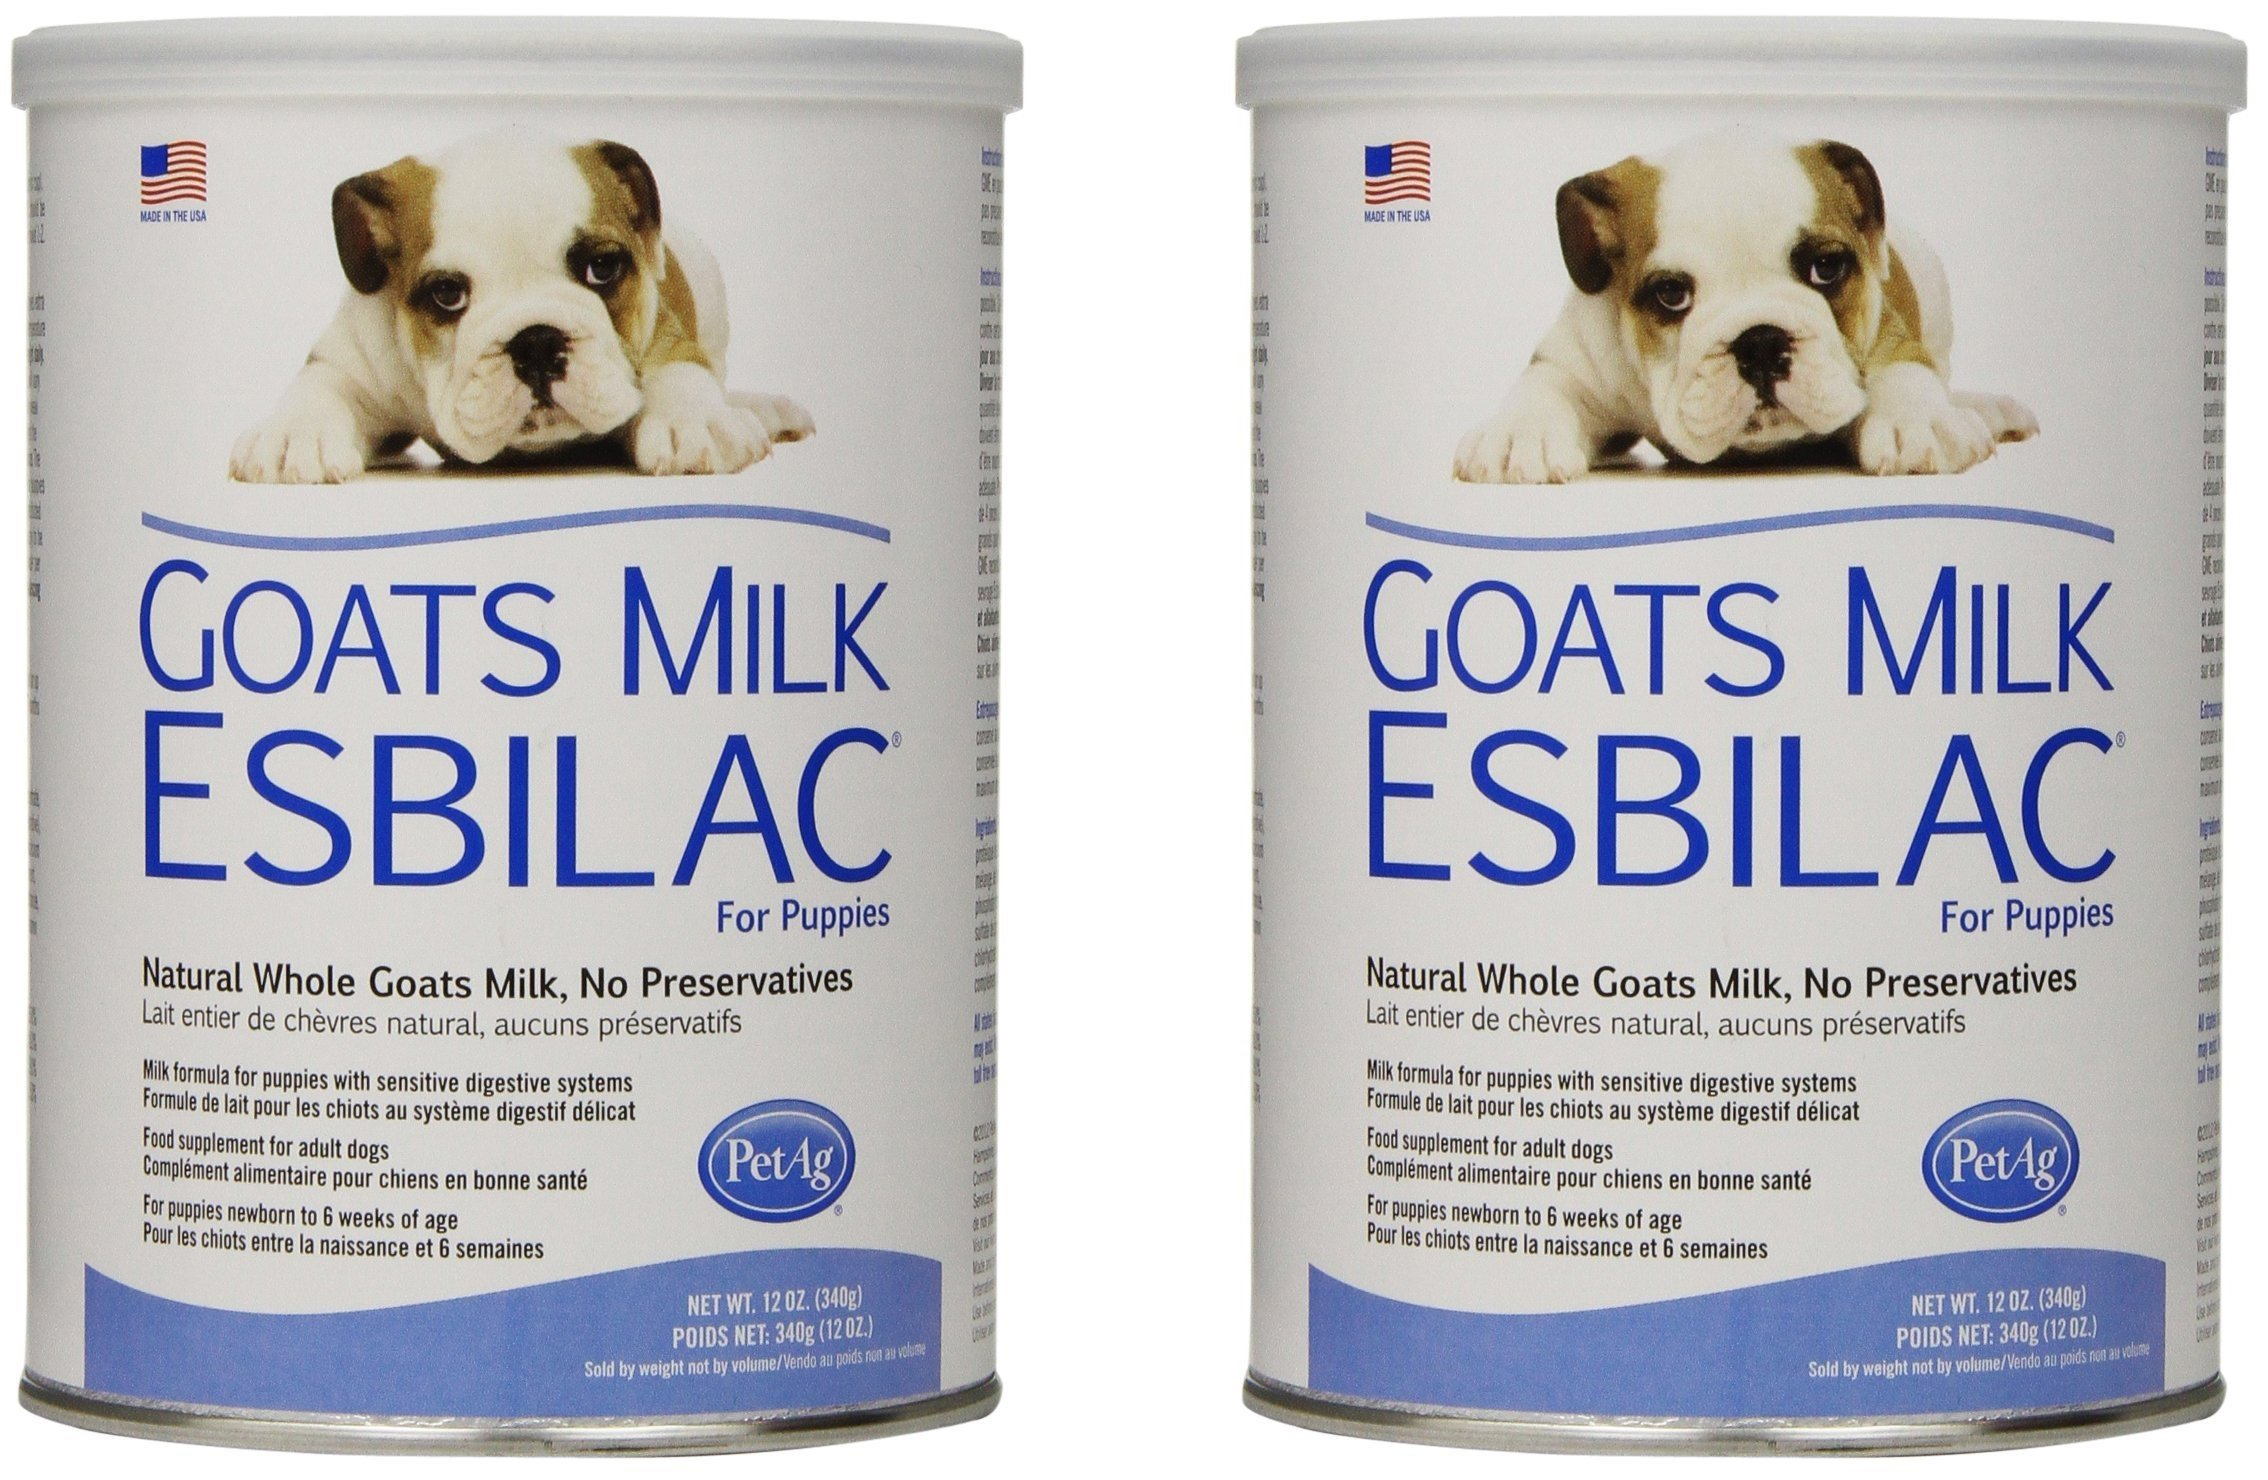 PetAg Goat's Milk Esbilac Powder - 12 Ounce (2 Pack) by Pet Ag Products